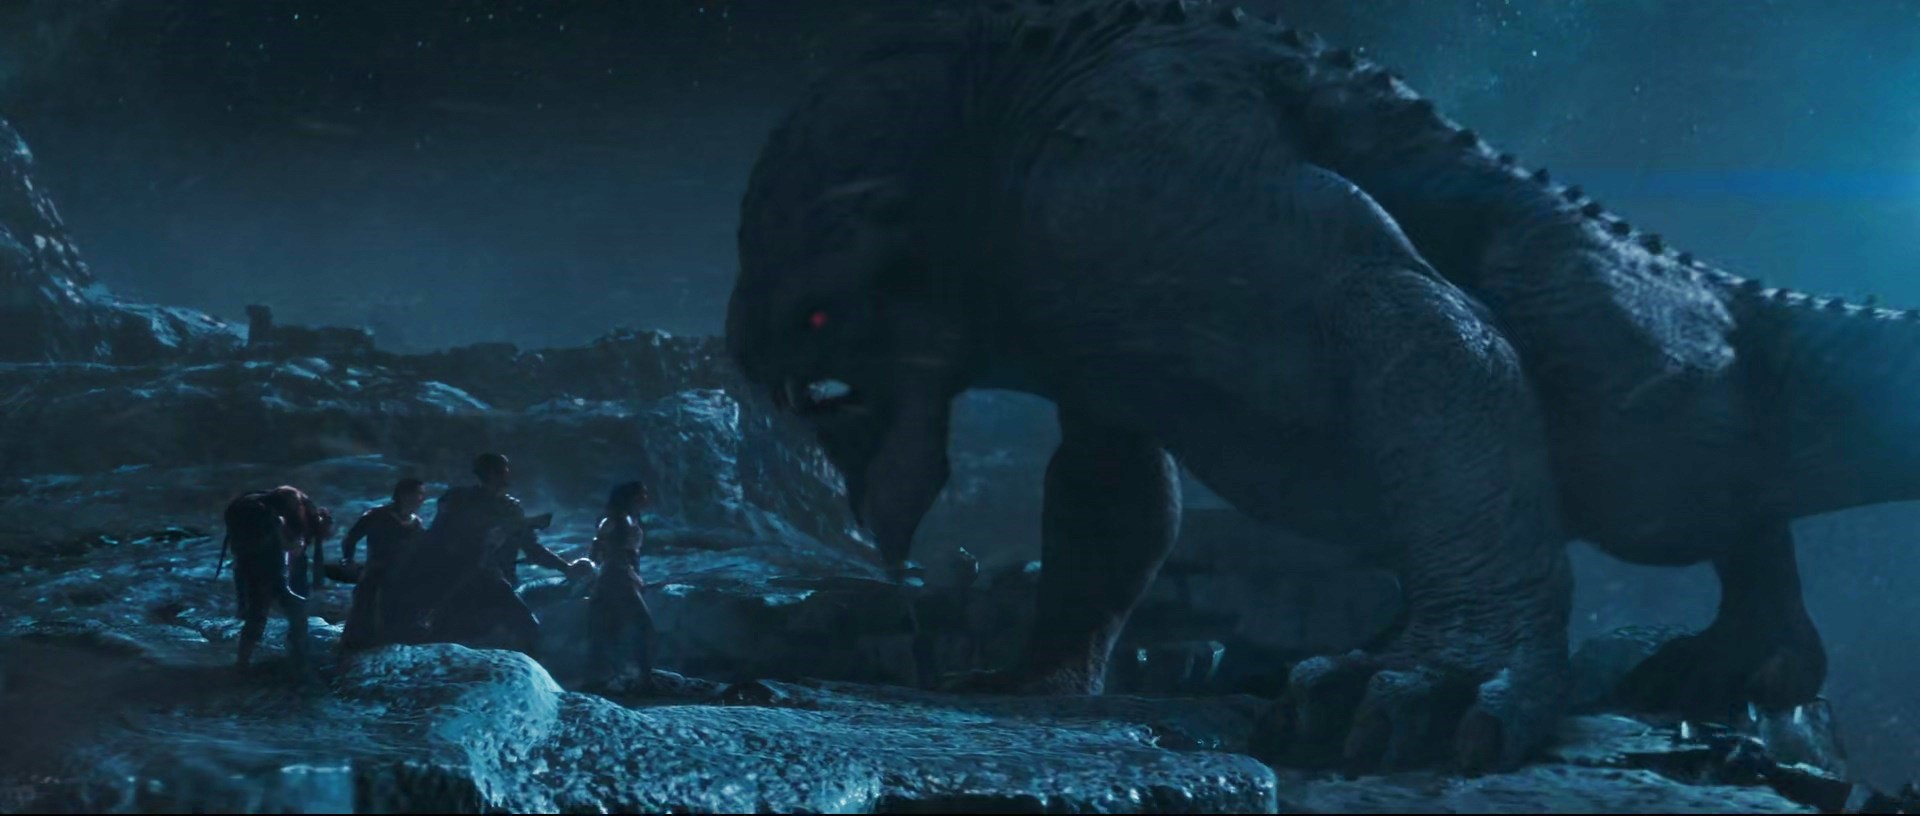 File:Frost Beast (Thor).jpg